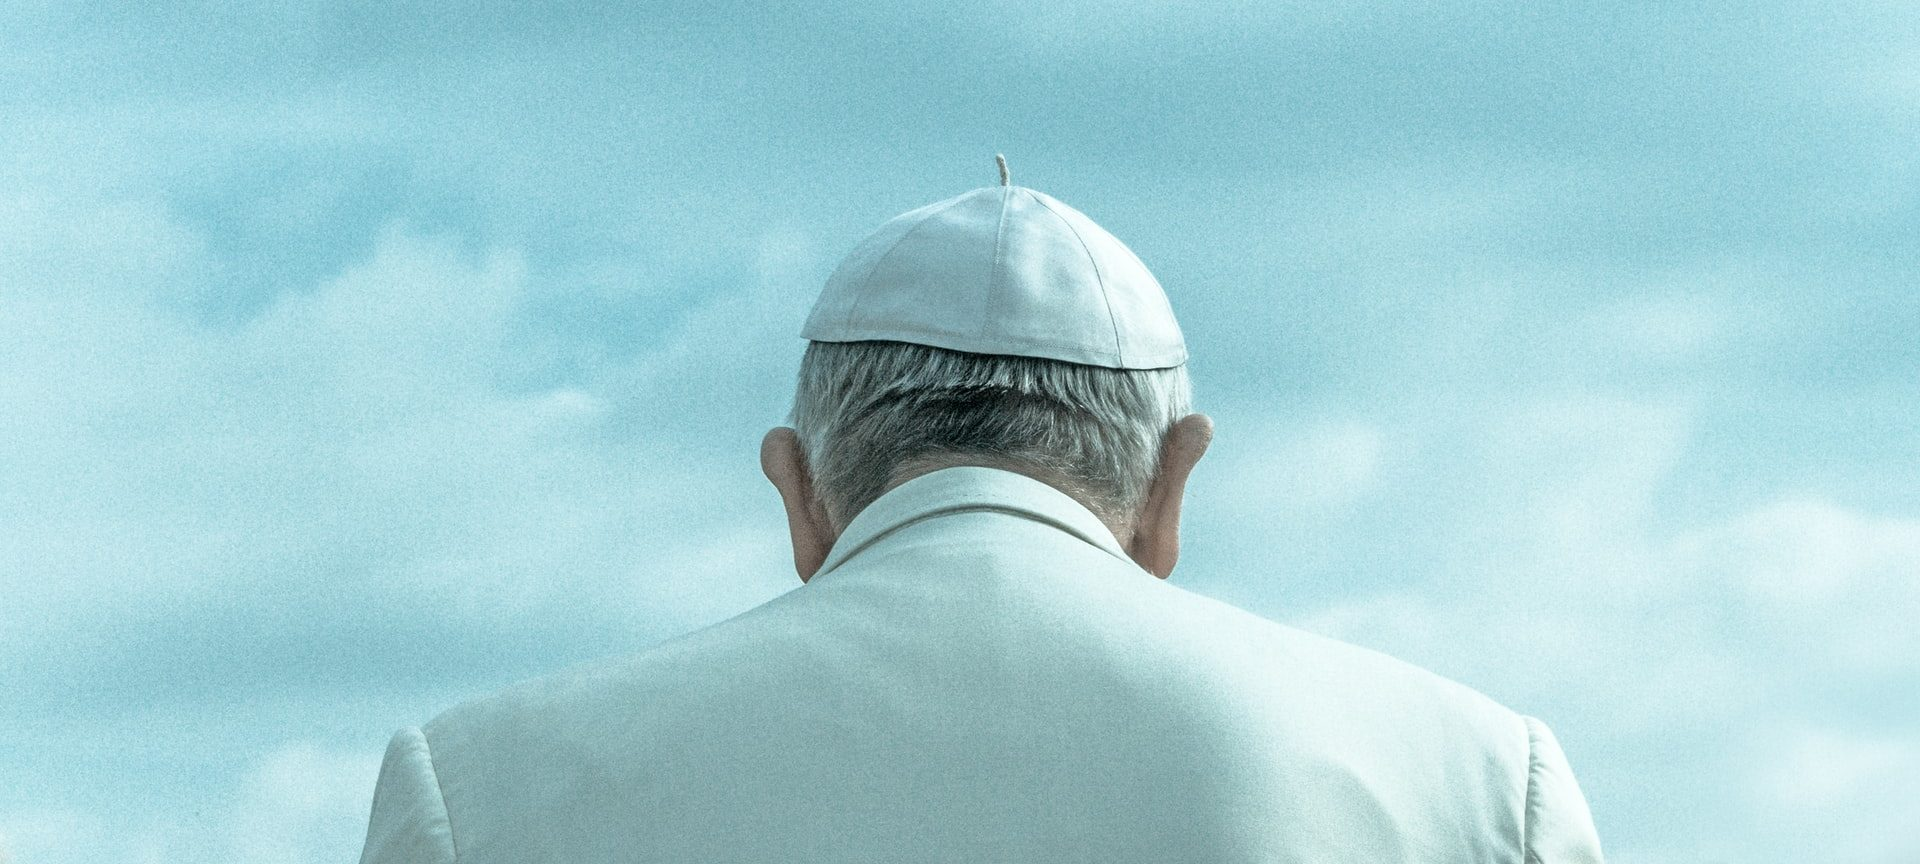 The Pope's Decision & Why Churches Should Embrace Our LGBTQIA Siblings